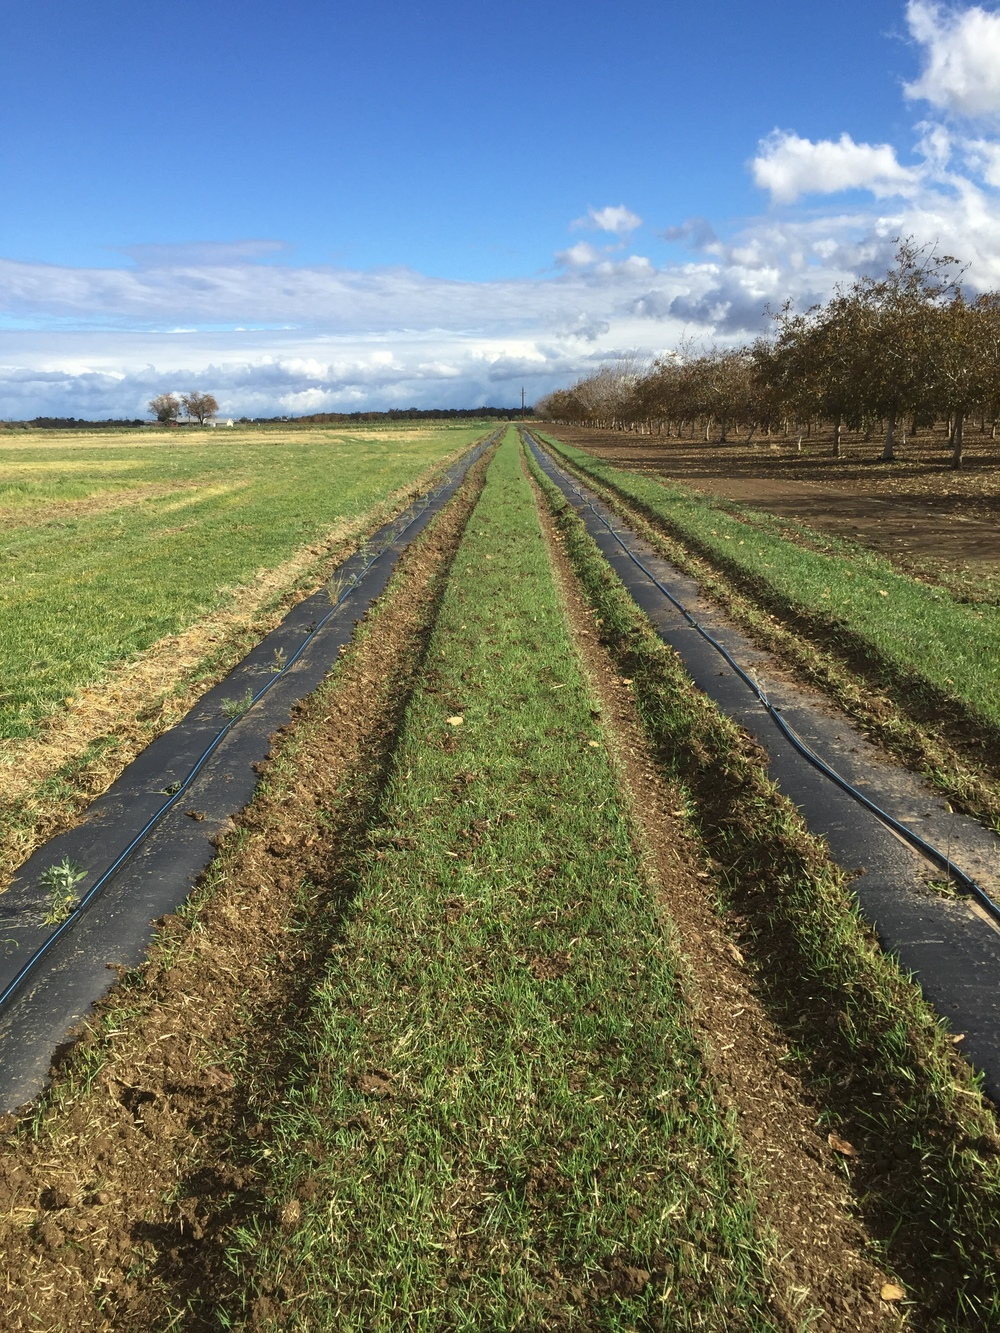 The plants are small and hard to see, but we see a beautiful future here for our hedgerow.  These two lines are over 1/4 mile long and contain 21 species of